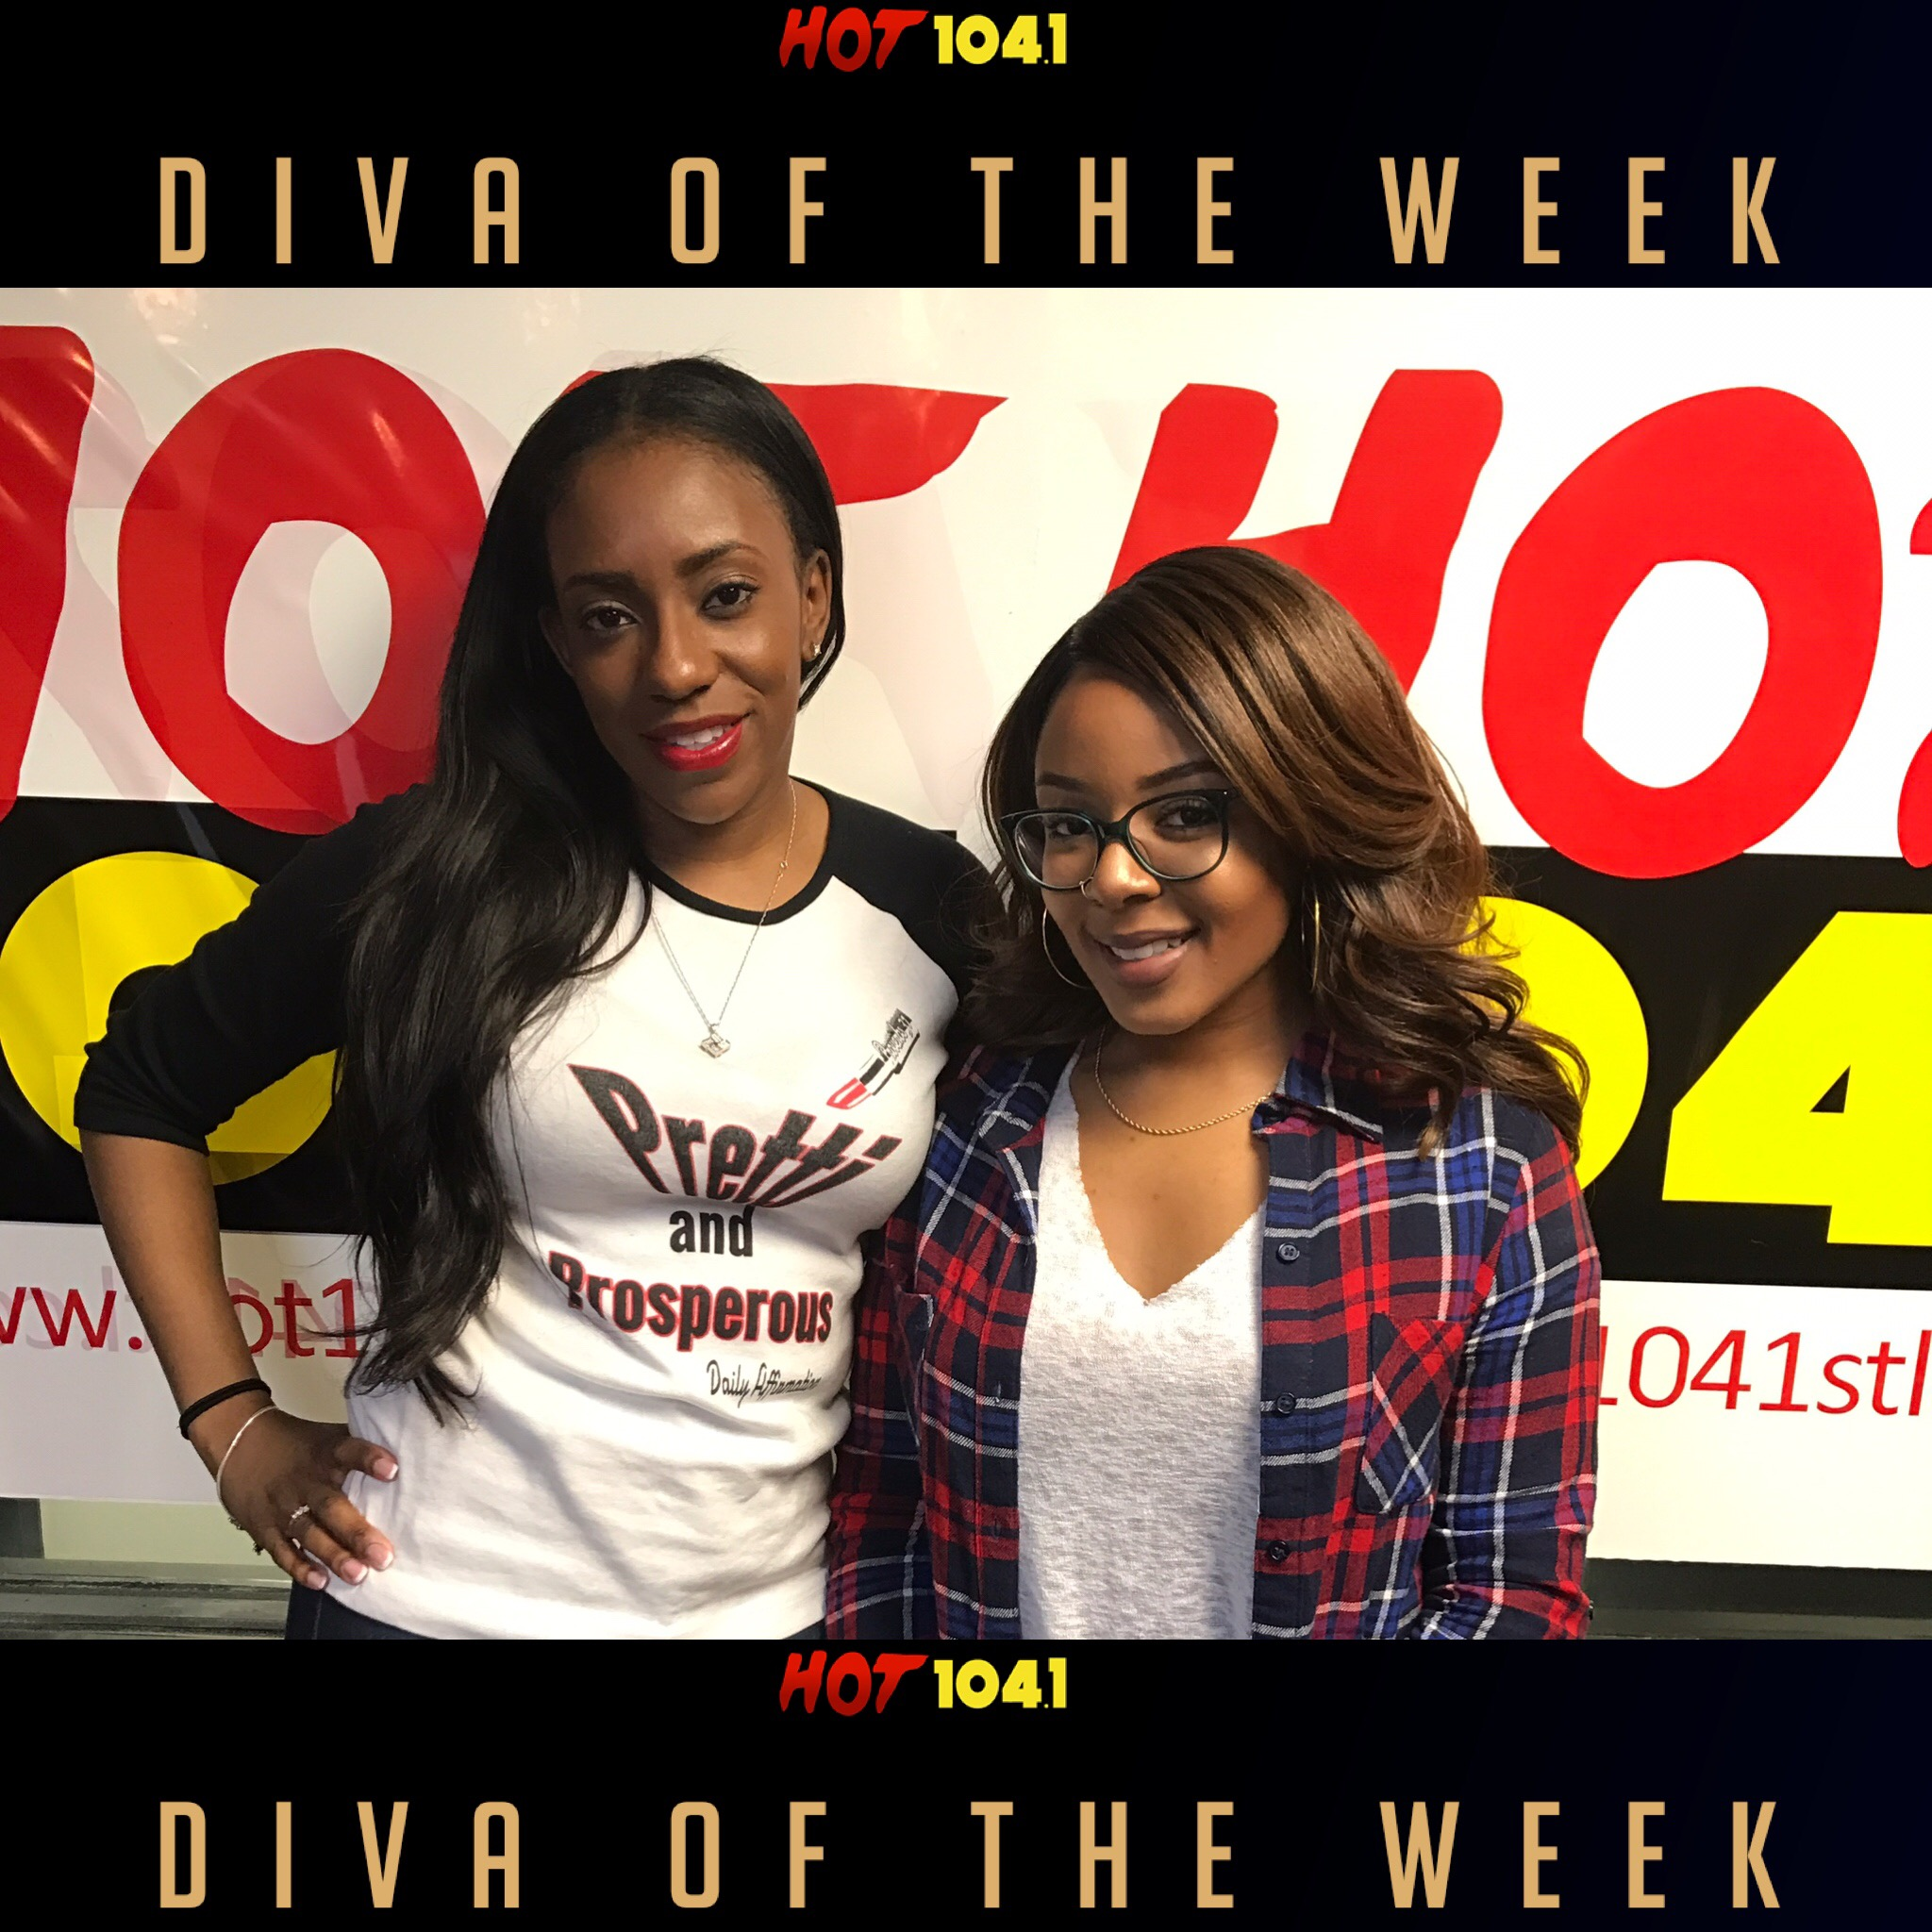 Diva of the Week Paris